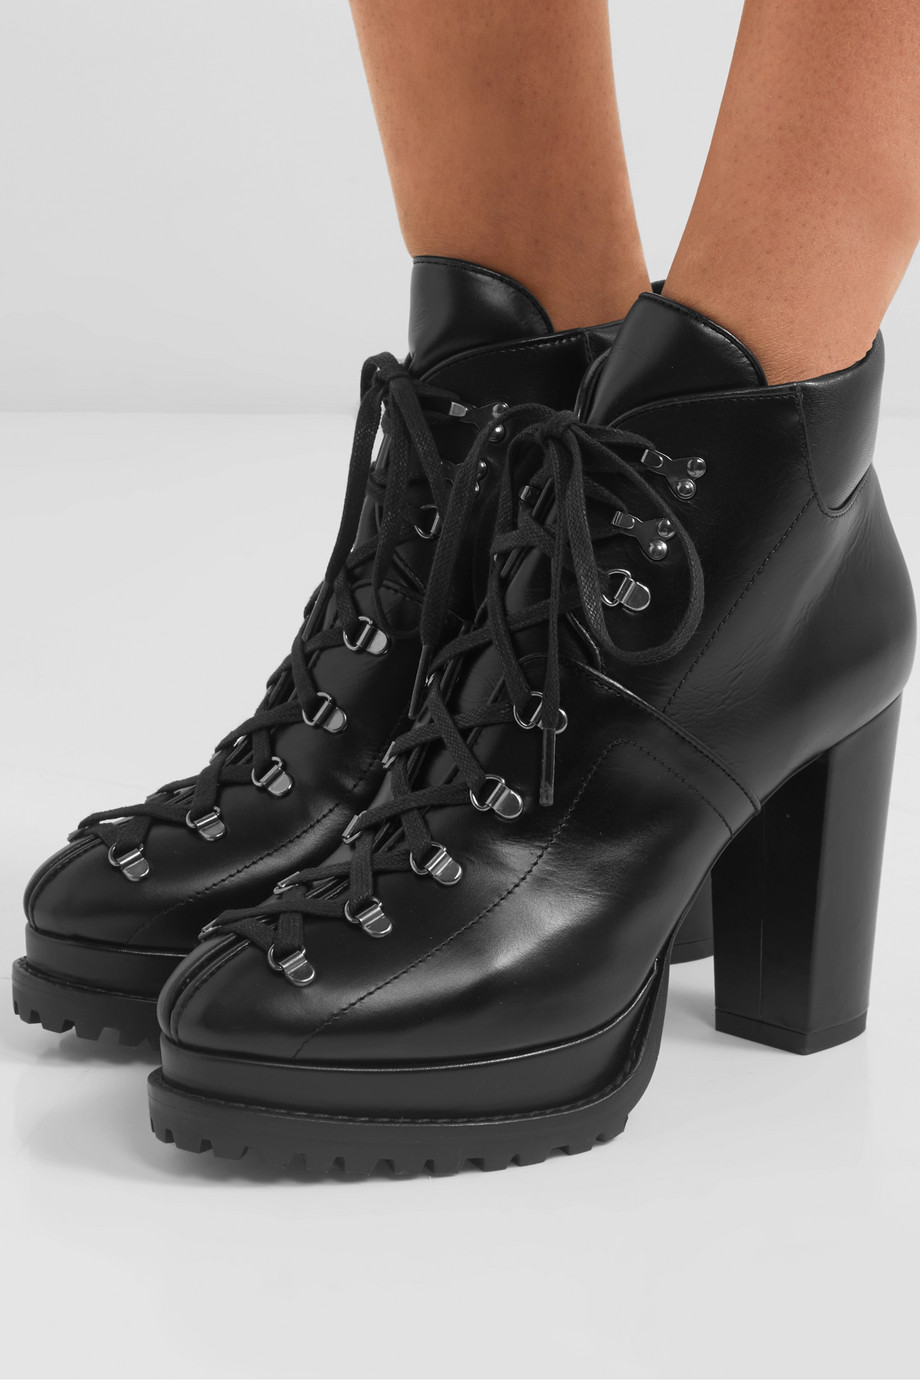 Alaïa 100 leather ankle boots